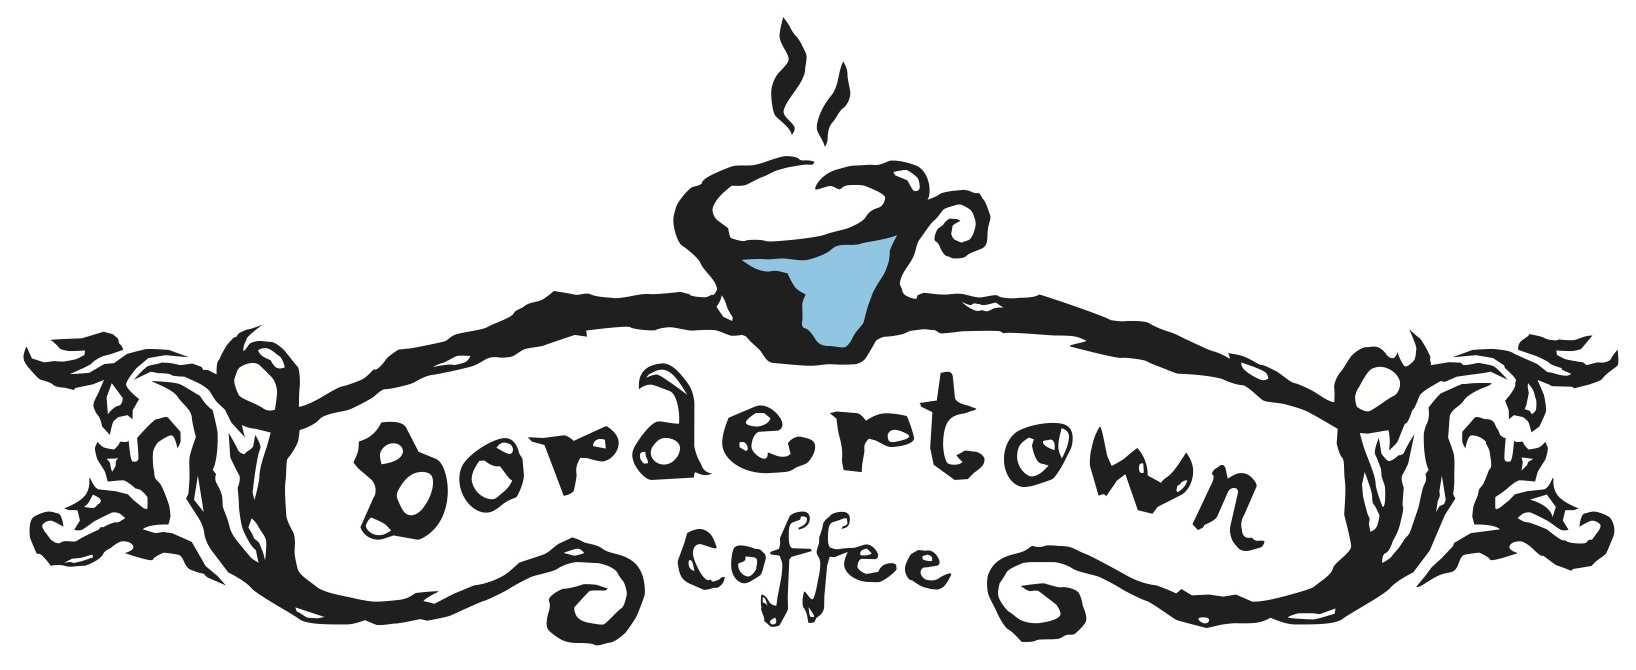 Bordertown_Logo_HiRes 2 trimmed.jpg